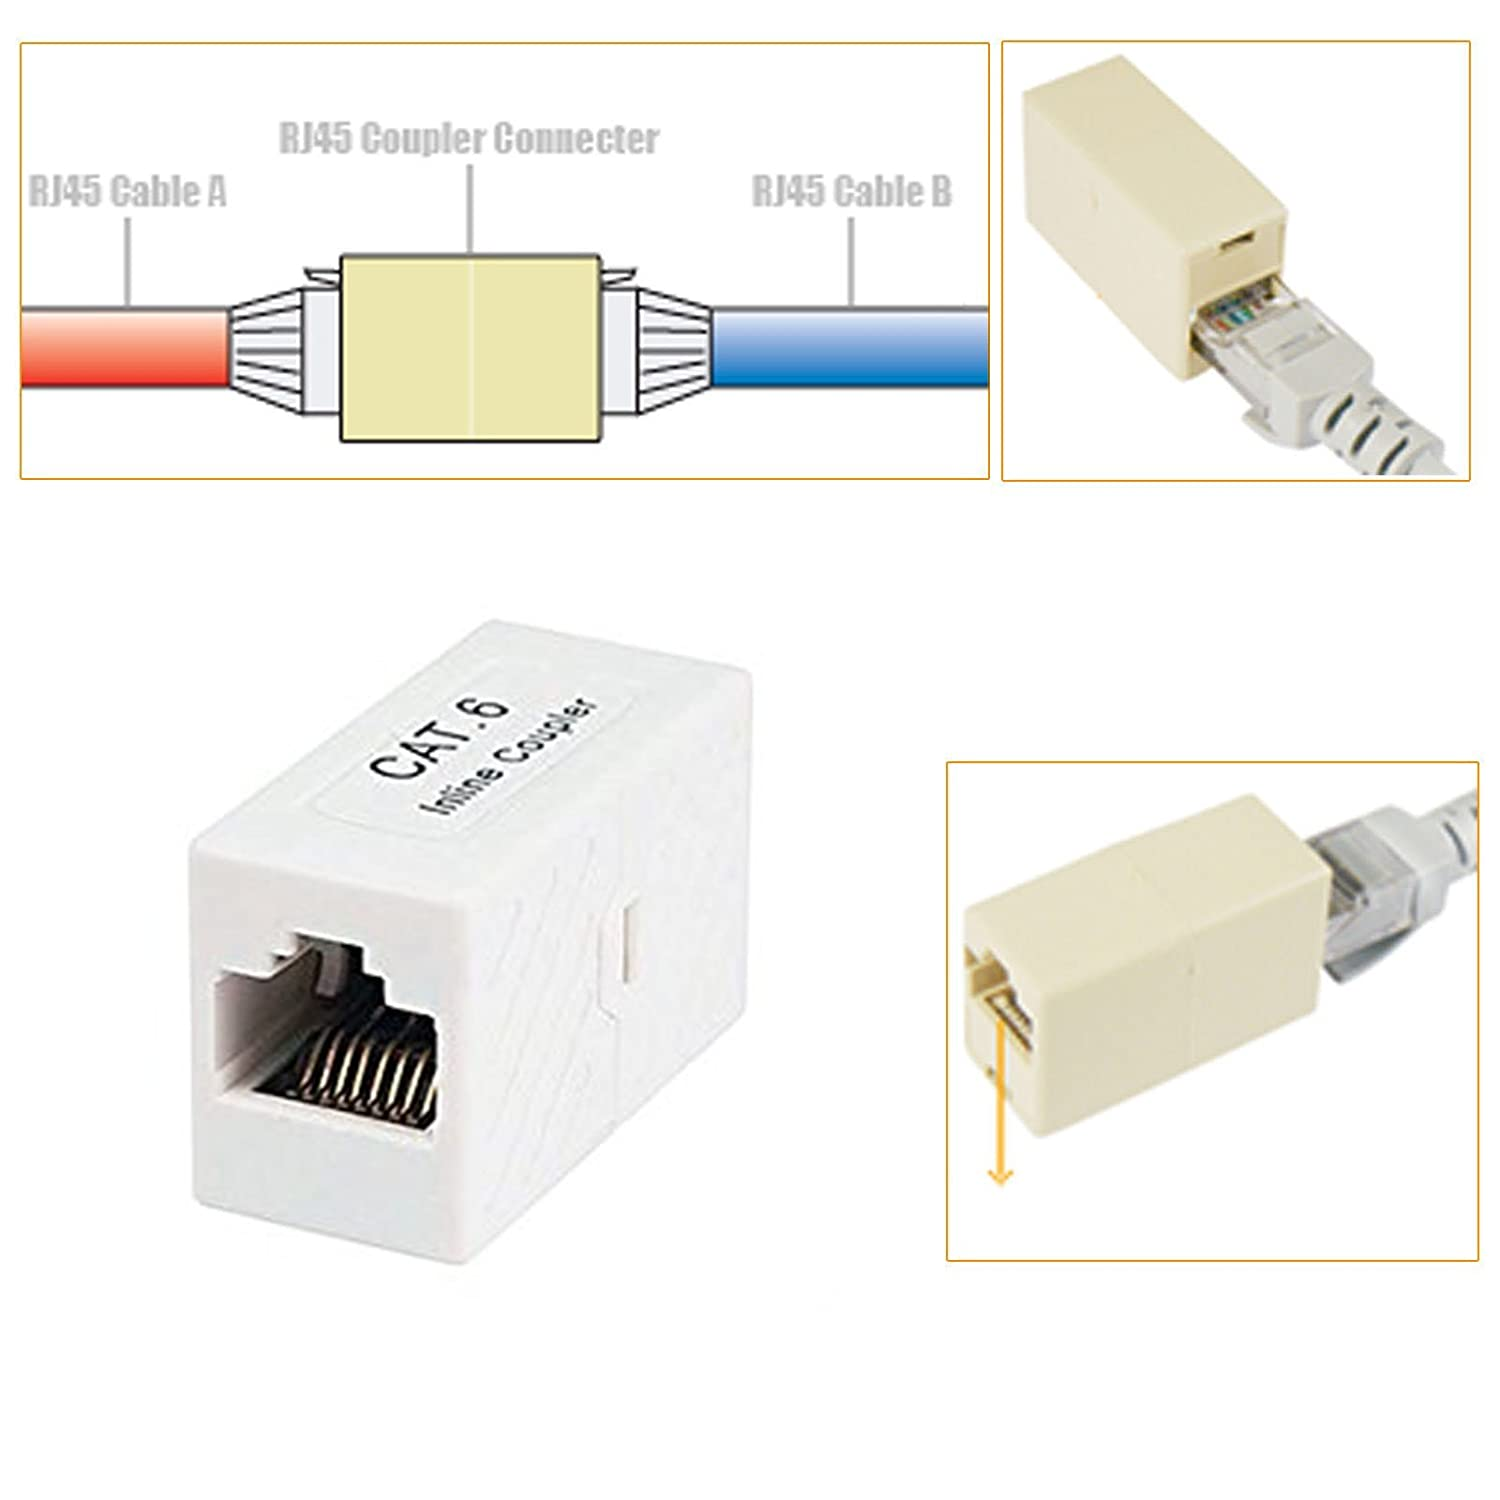 Wiring Diagram Rj11 To Rj45 Coupling Libraries Connectors Modular Amazon Com Imbaprice Premium Coupler Cat6 Ethernet Cableamazon